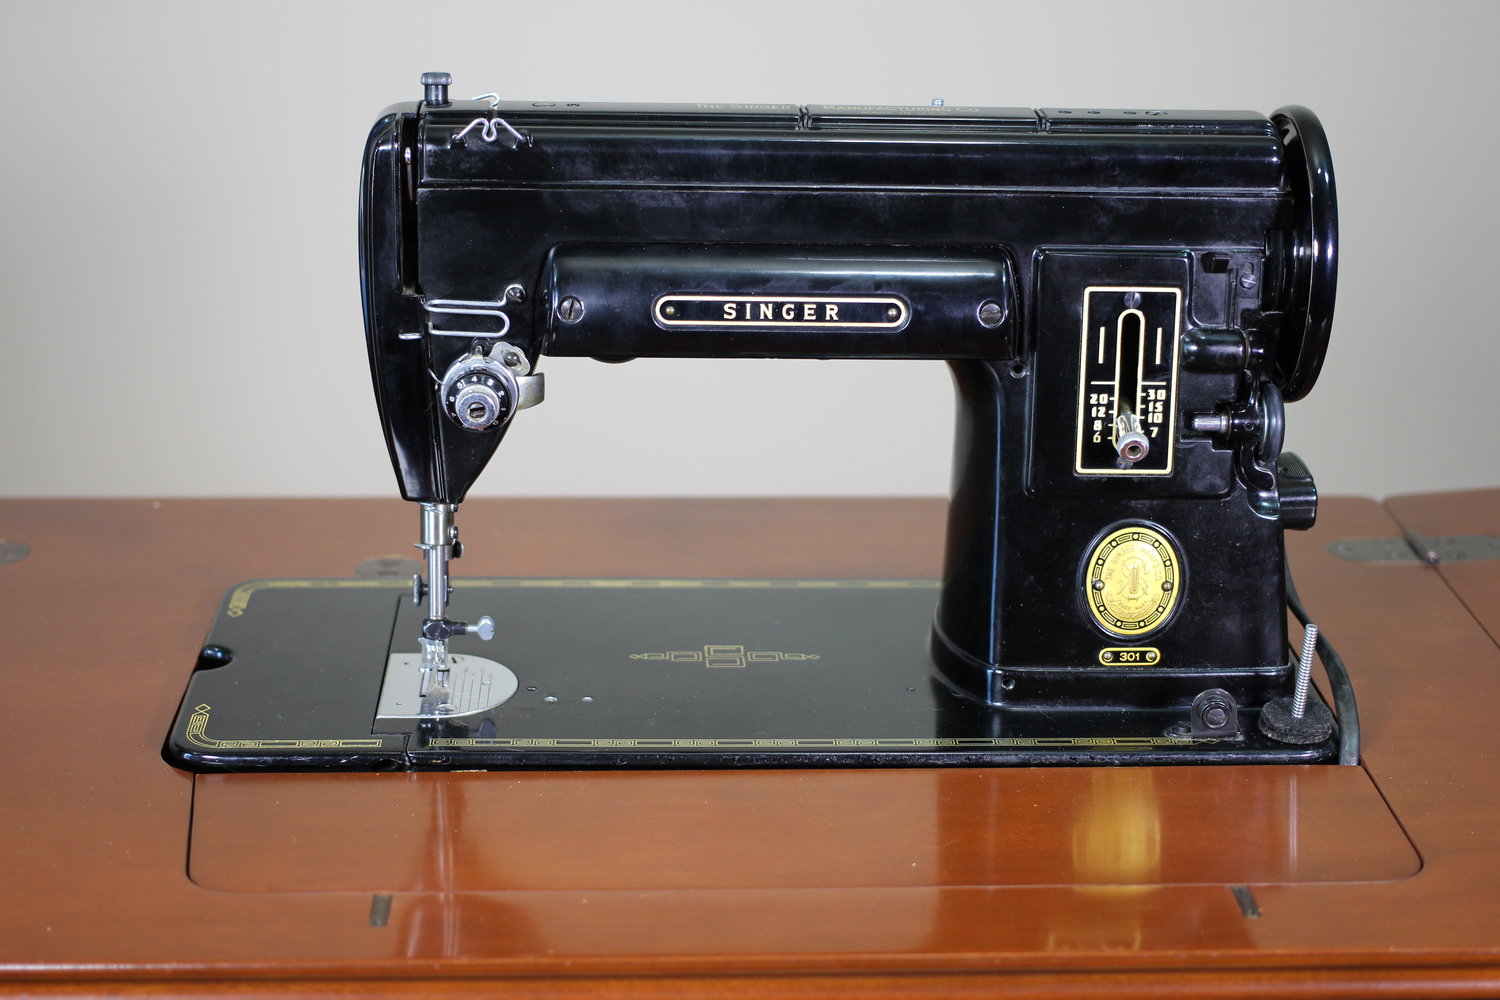 EBay Is Not The Place To Buy A Vintage Sewing Machine — Chatterbox Quilts - EBay Is Not The Place To Buy A Vintage Sewing Machine — Chatterbox